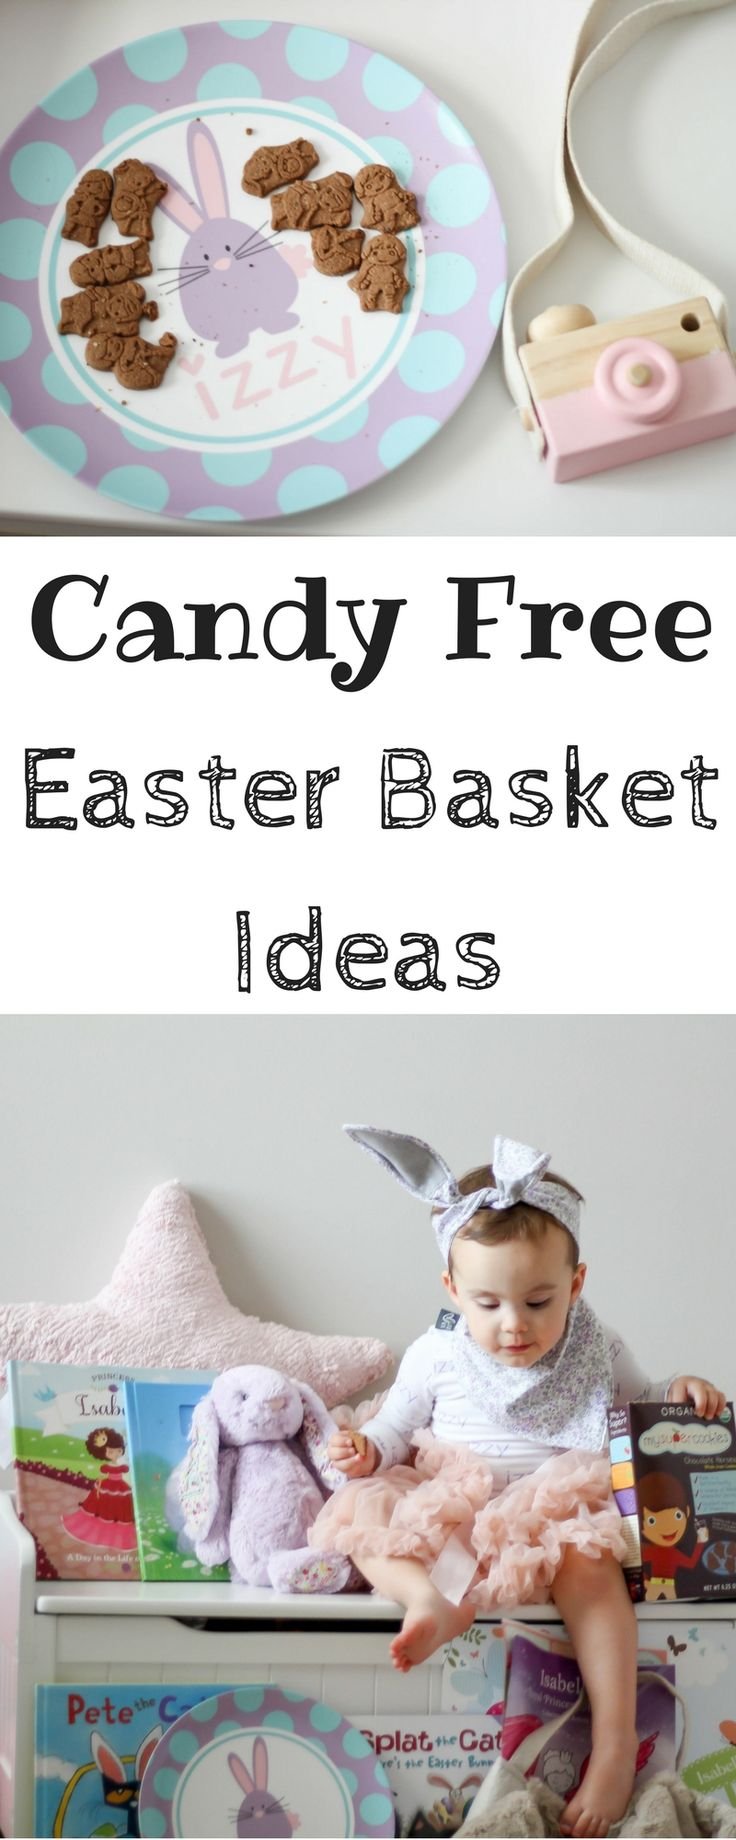 Candy Free Easter Basket Ideas | Toddler and Kid Easter Baskets | First Easter | Bunny Ears | Easter Outfits | Baby Easter Basket | busylittleizzy | personalized gifts